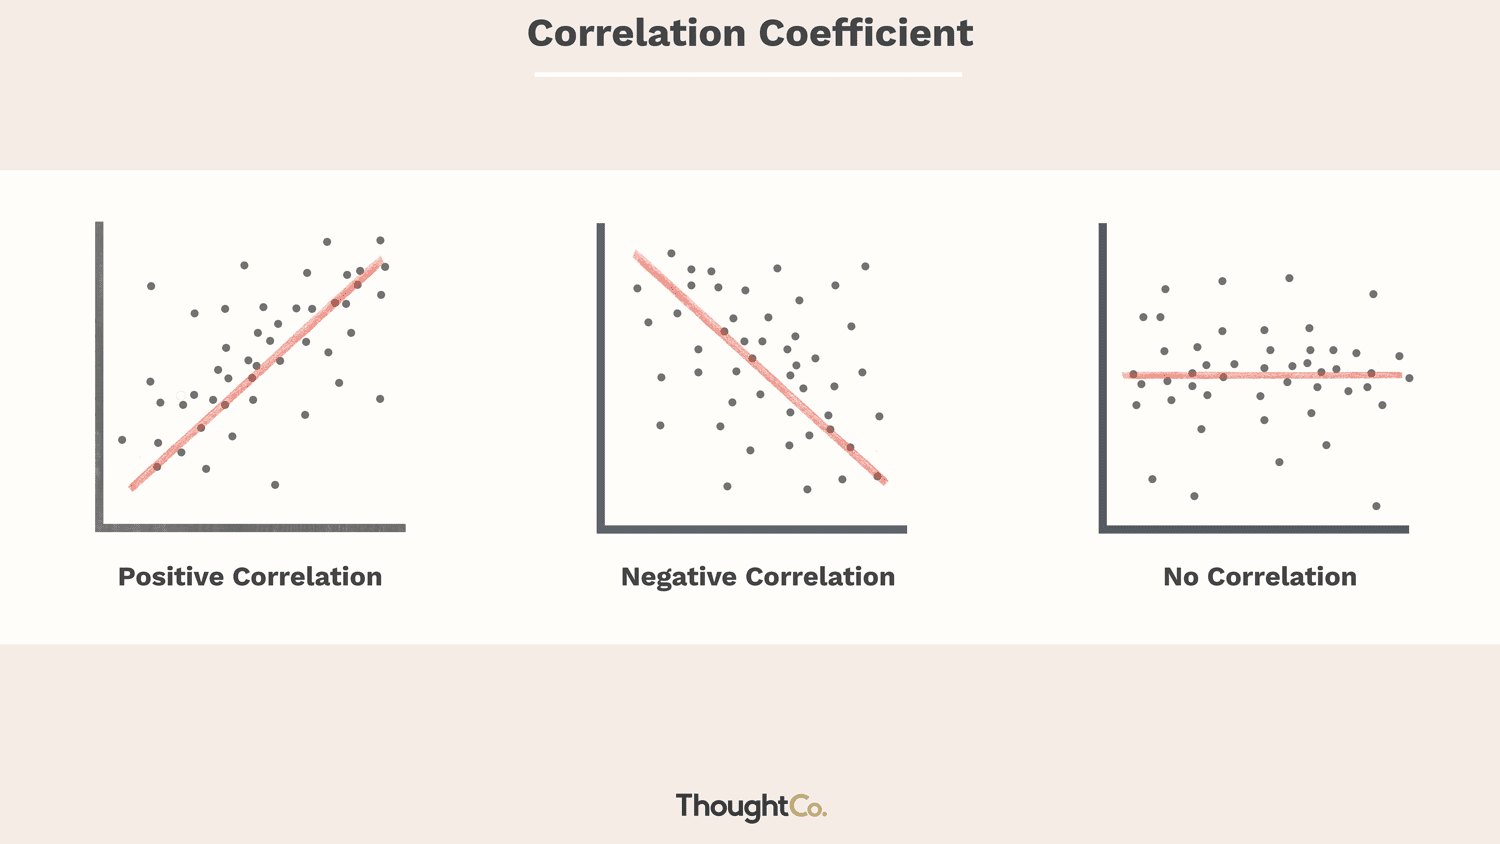 How to Calculate the Coefficient of Correlation